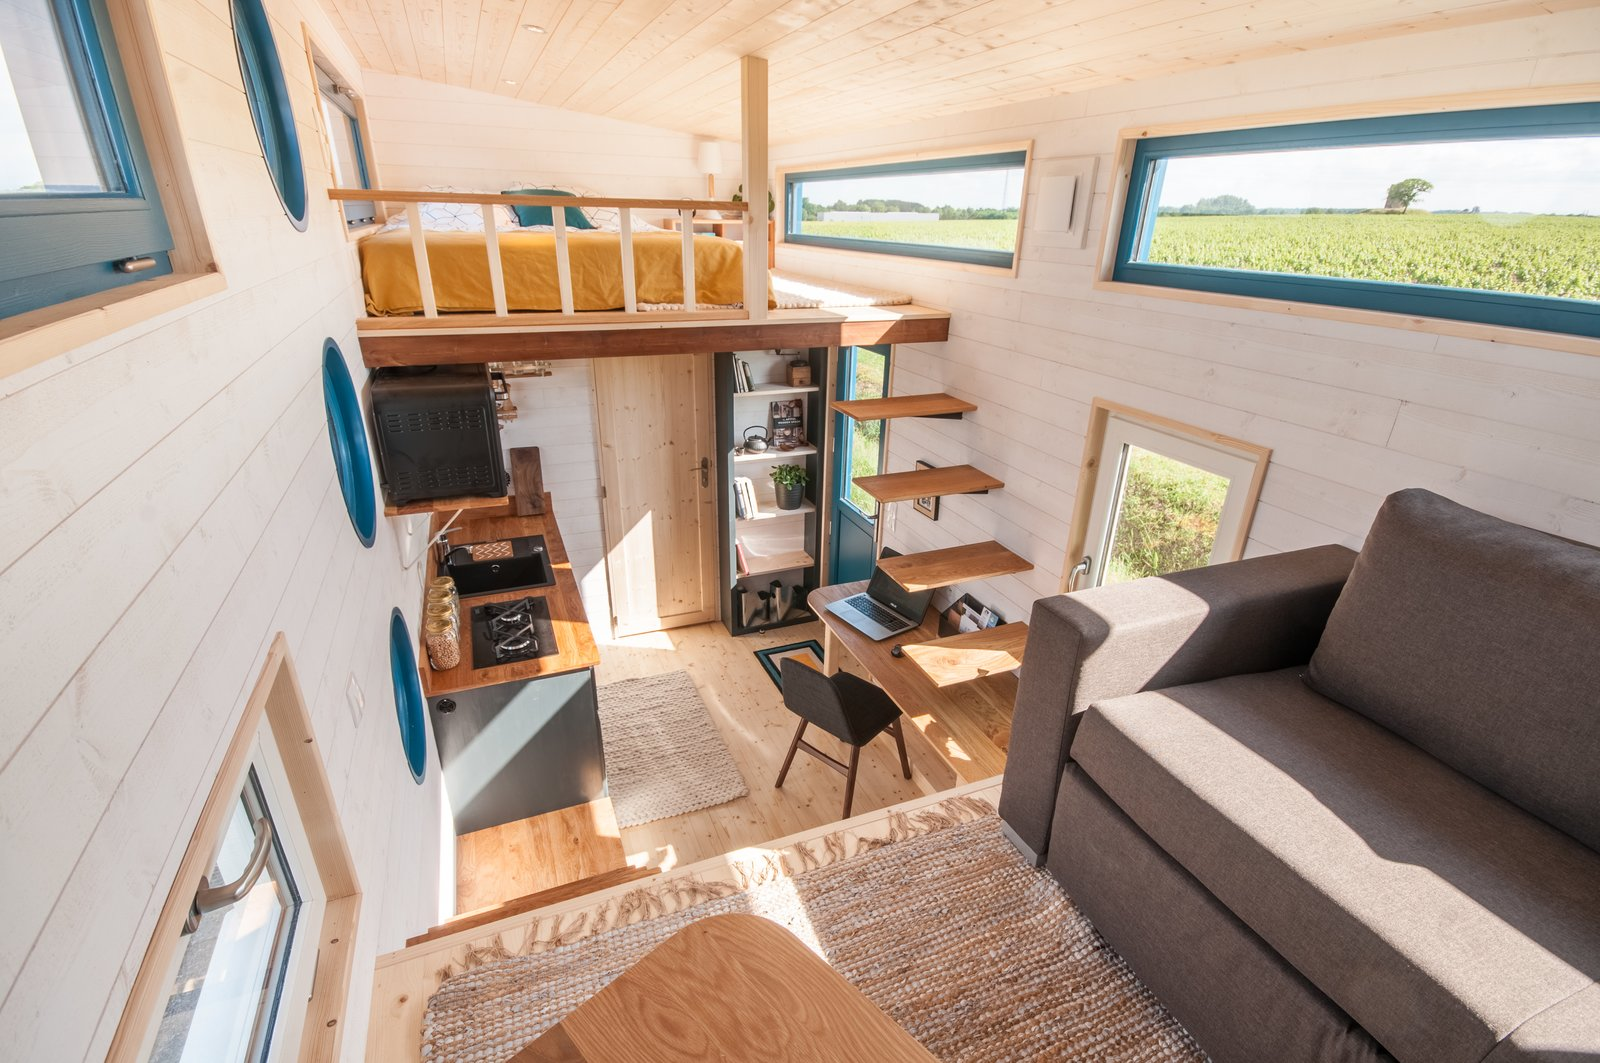 Living, Sofa, Shelves, Desk, Coffee Tables, Light Hardwood, Chair, and Recessed Across from the entrance door is the kitchen, which features a sink, small oven, hot water tank, fridge, and gas hobs.  Best Living Desk Chair Photos from This 140-Square-Foot Tiny House Is Packed With Surprises